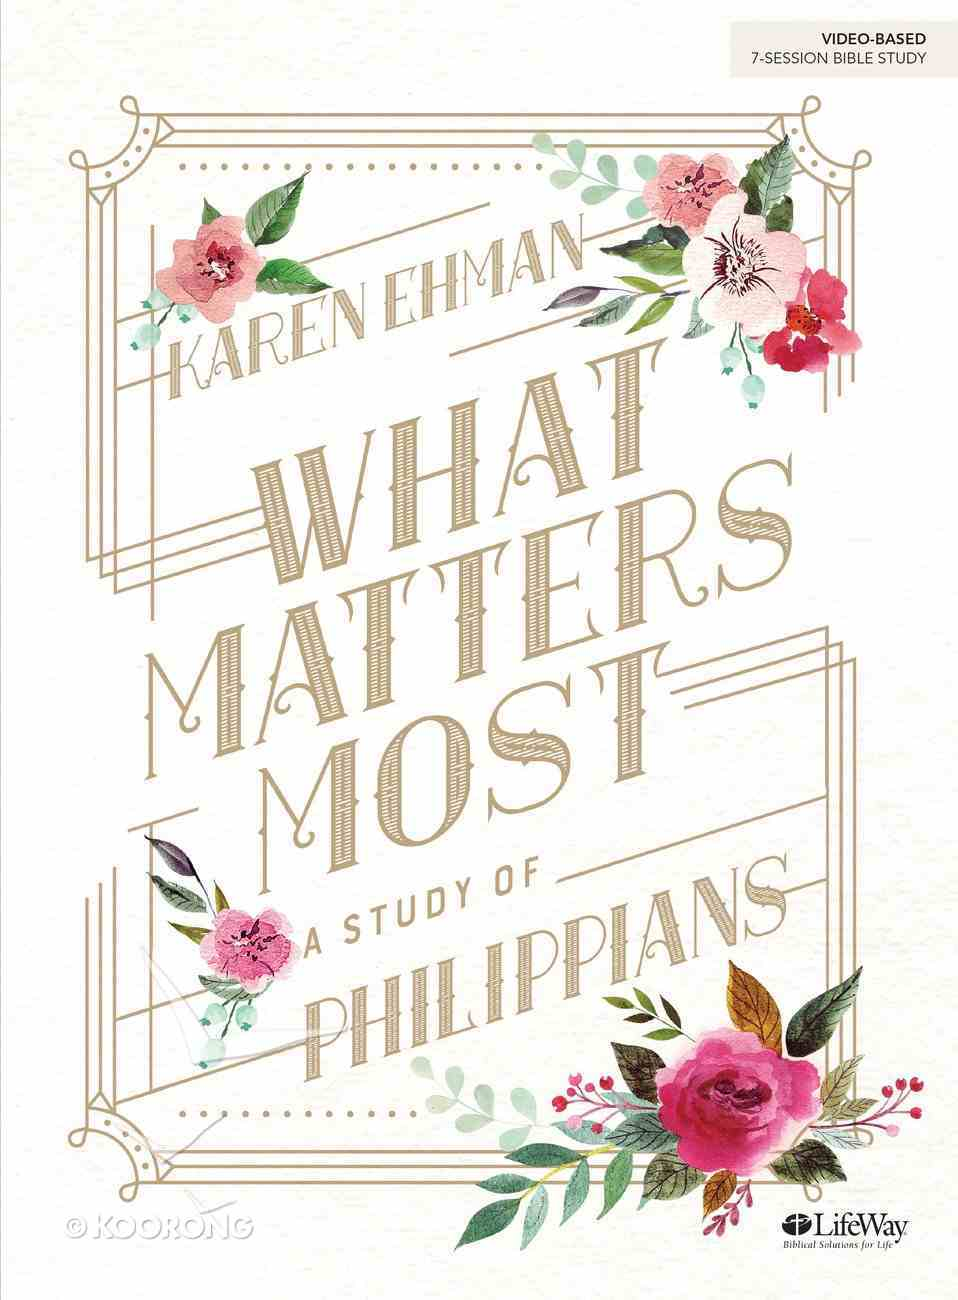 What Matters Most: A Study of Philippians (7 Sessions) (Bible Study Book) Paperback